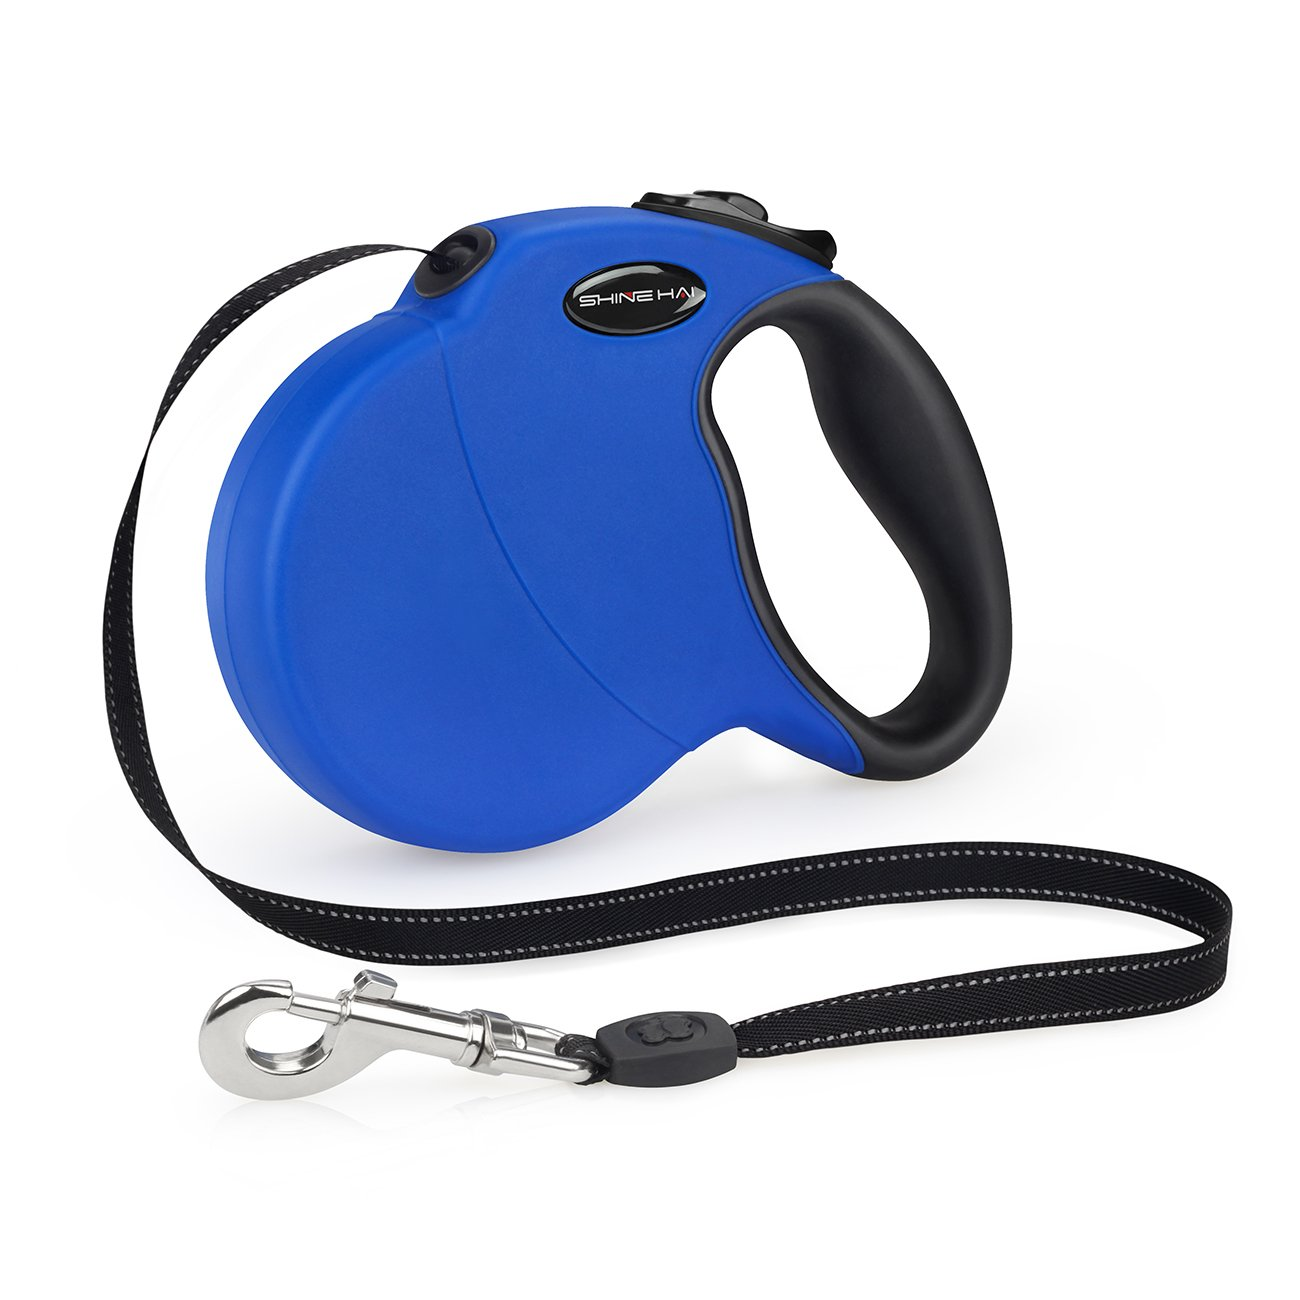 SHINE HAI Retractable Dog Leash, 16ft Dog Walking Leash for Large Medium Small Dog Up to 110lbs, Break & Lock System, Reflective Ribbon Cord, Blue